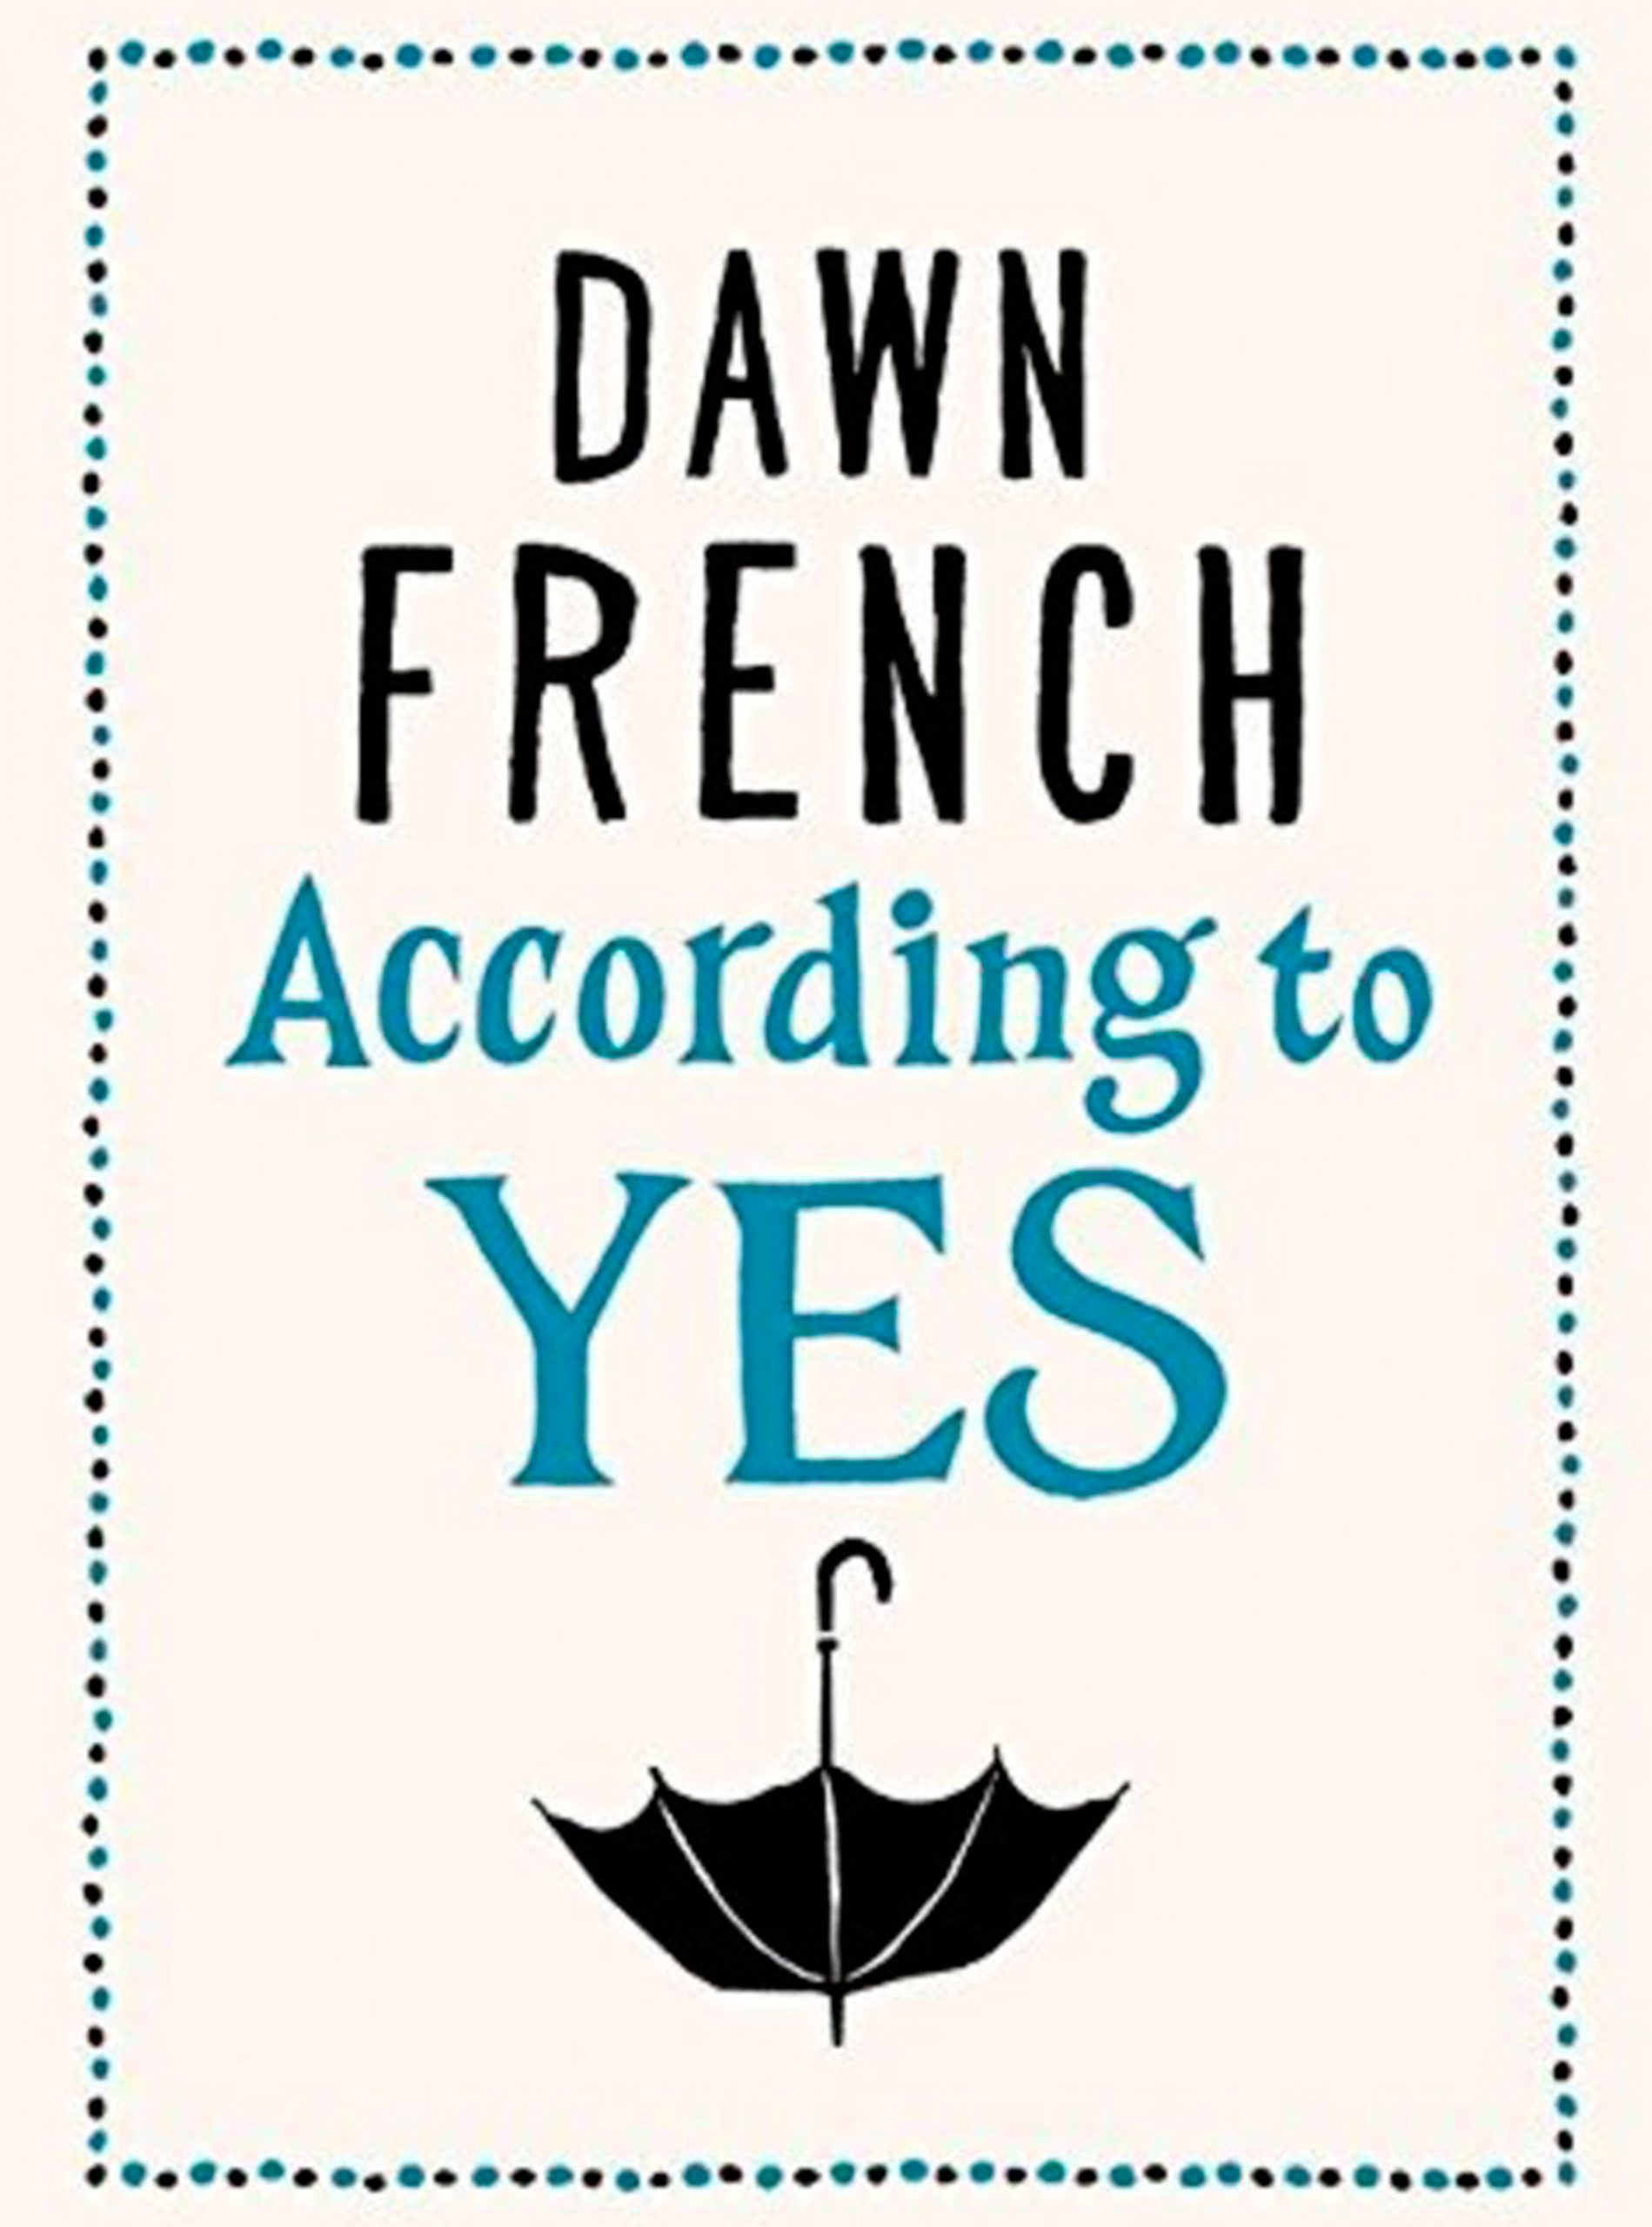 Dawn-French-according-to-yes.jpg